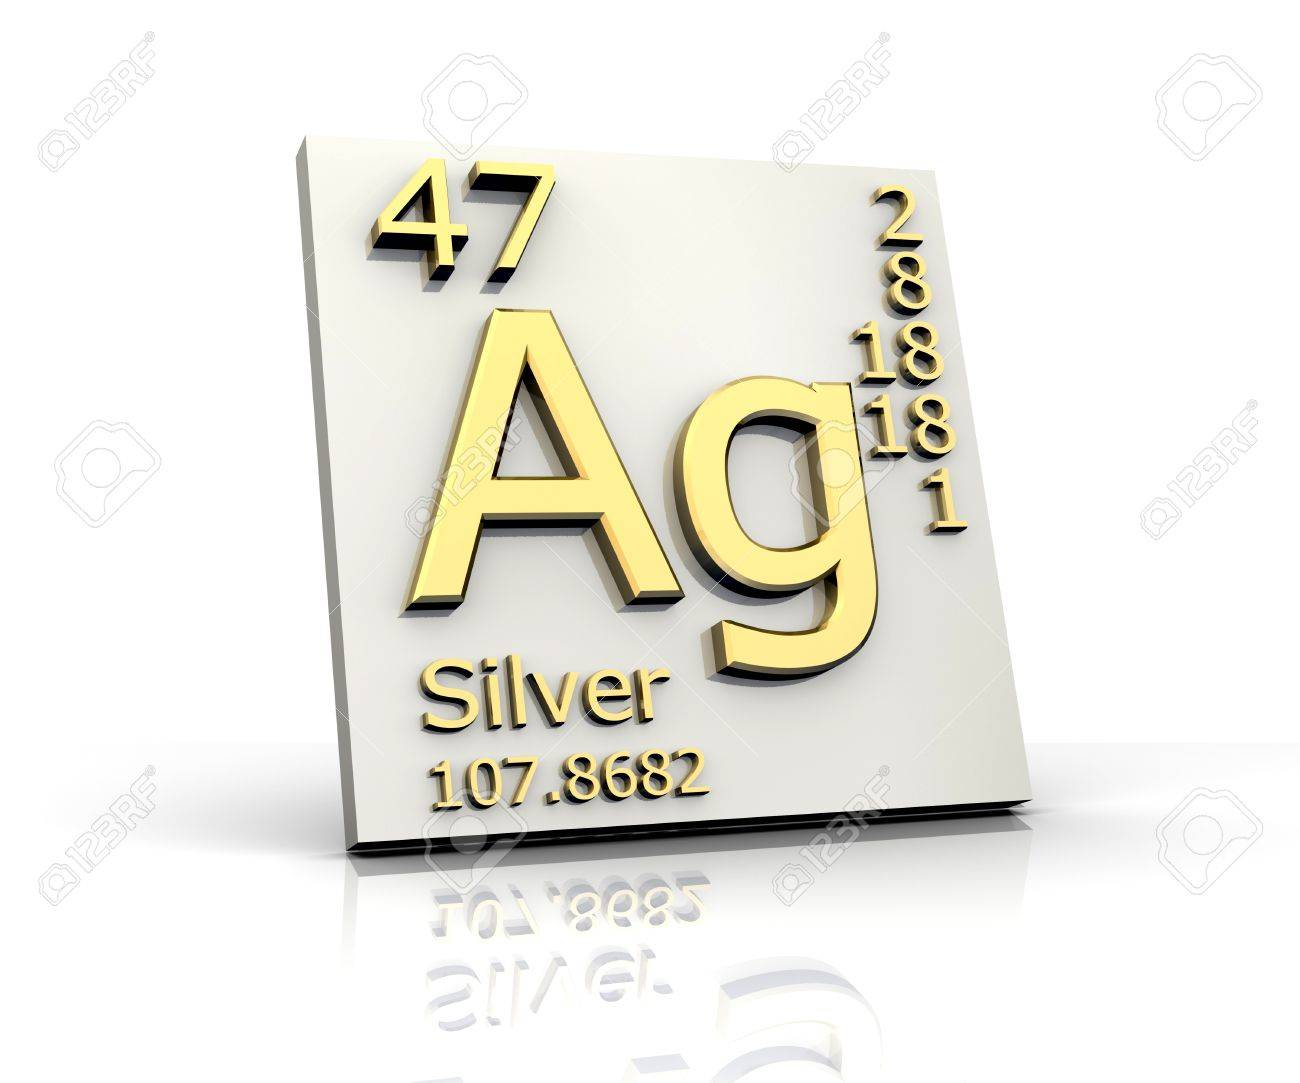 Silver form periodic table of elements stock photo picture and silver form periodic table of elements stock photo 4315580 urtaz Images